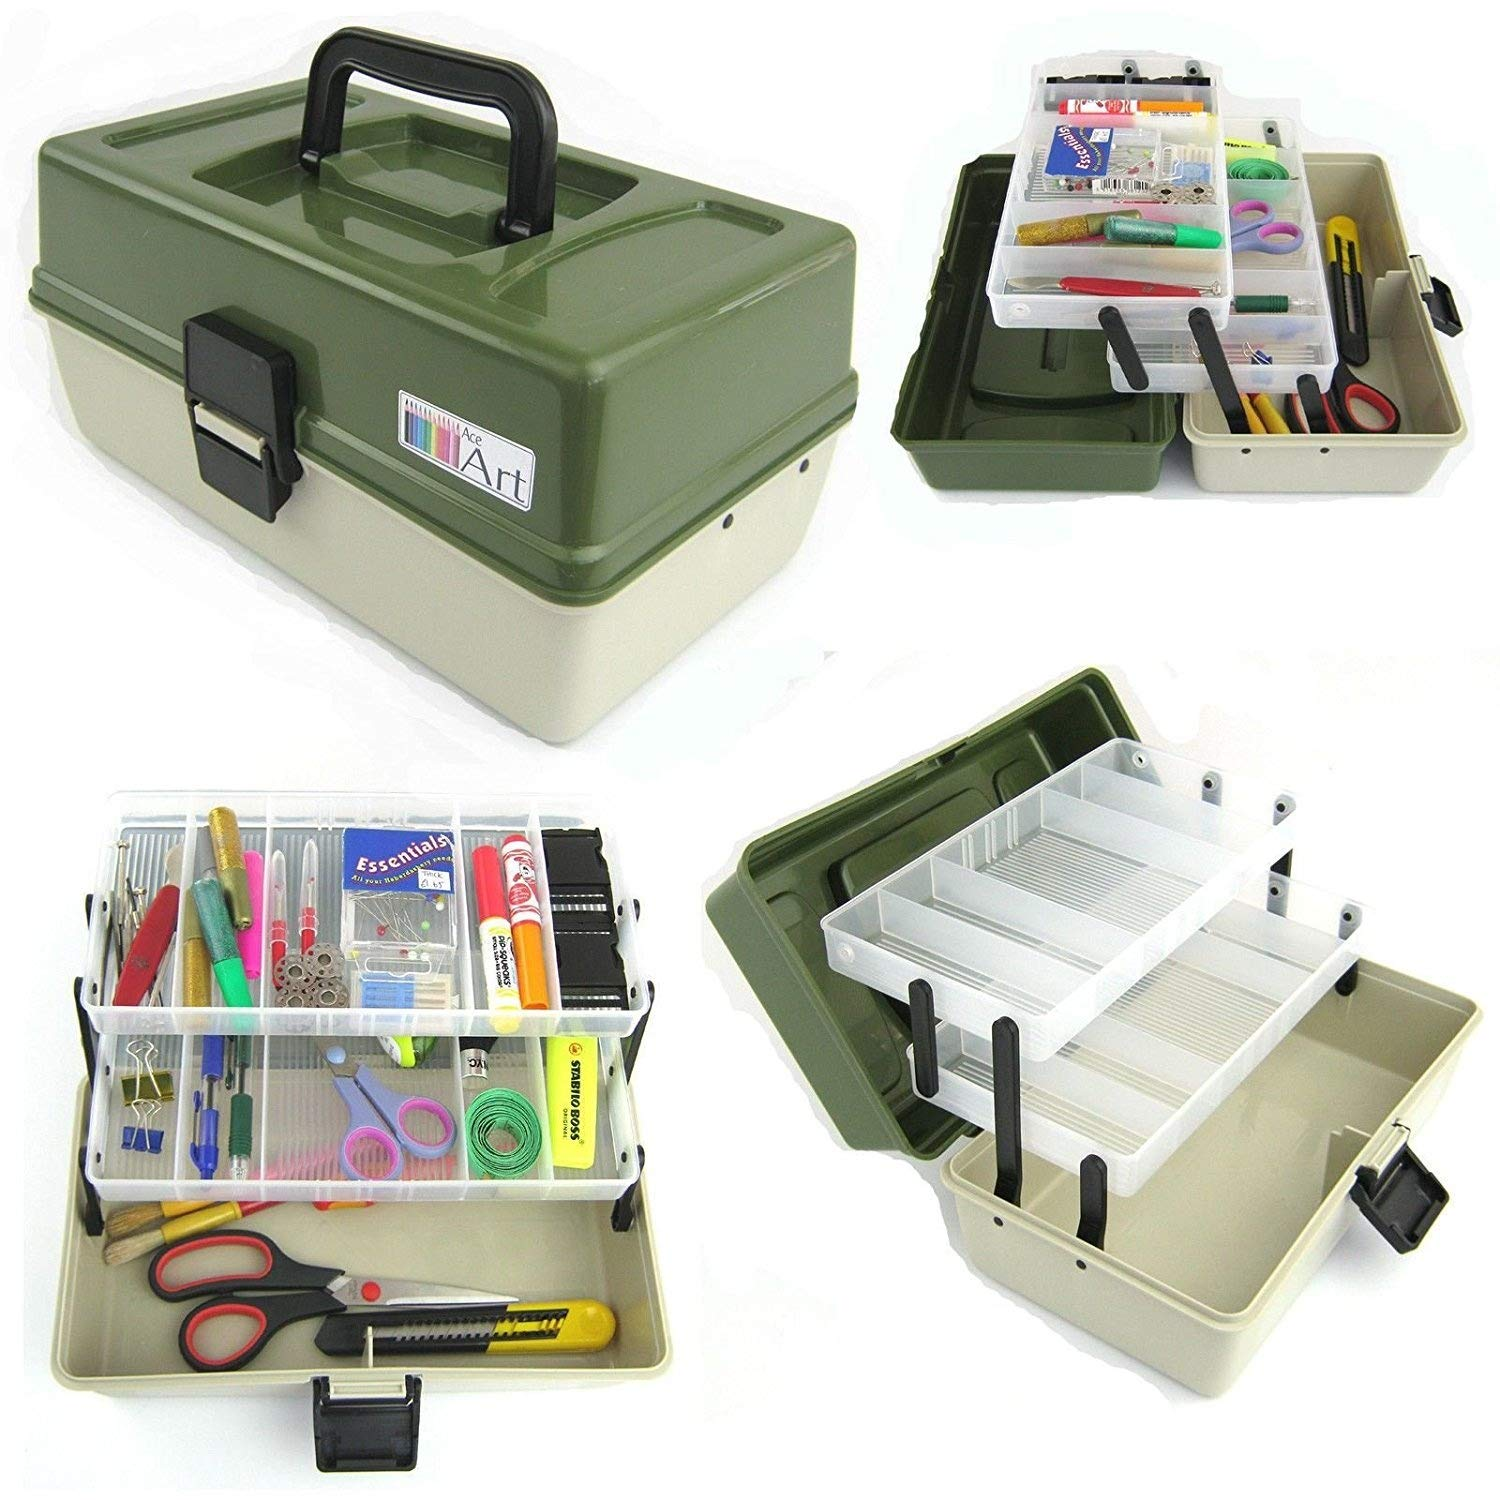 Ace Arts 2 Tray Craft Cantilever Box Sewing Embellishment Beads Paints Art Artist Box Silver Bullet Trading Ltd